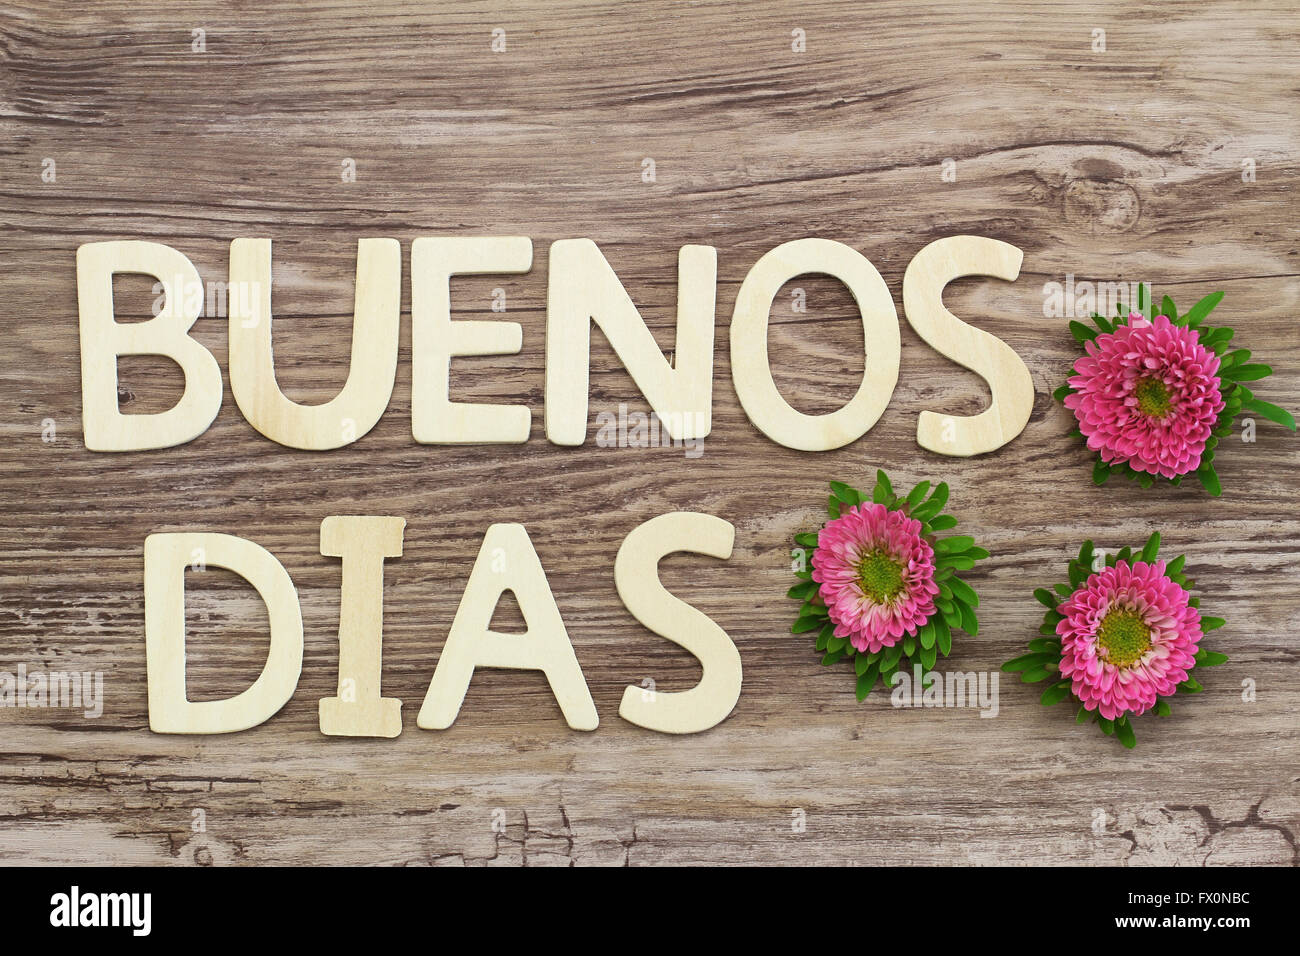 Buenos dias (which means good morning in Spanish) written ...